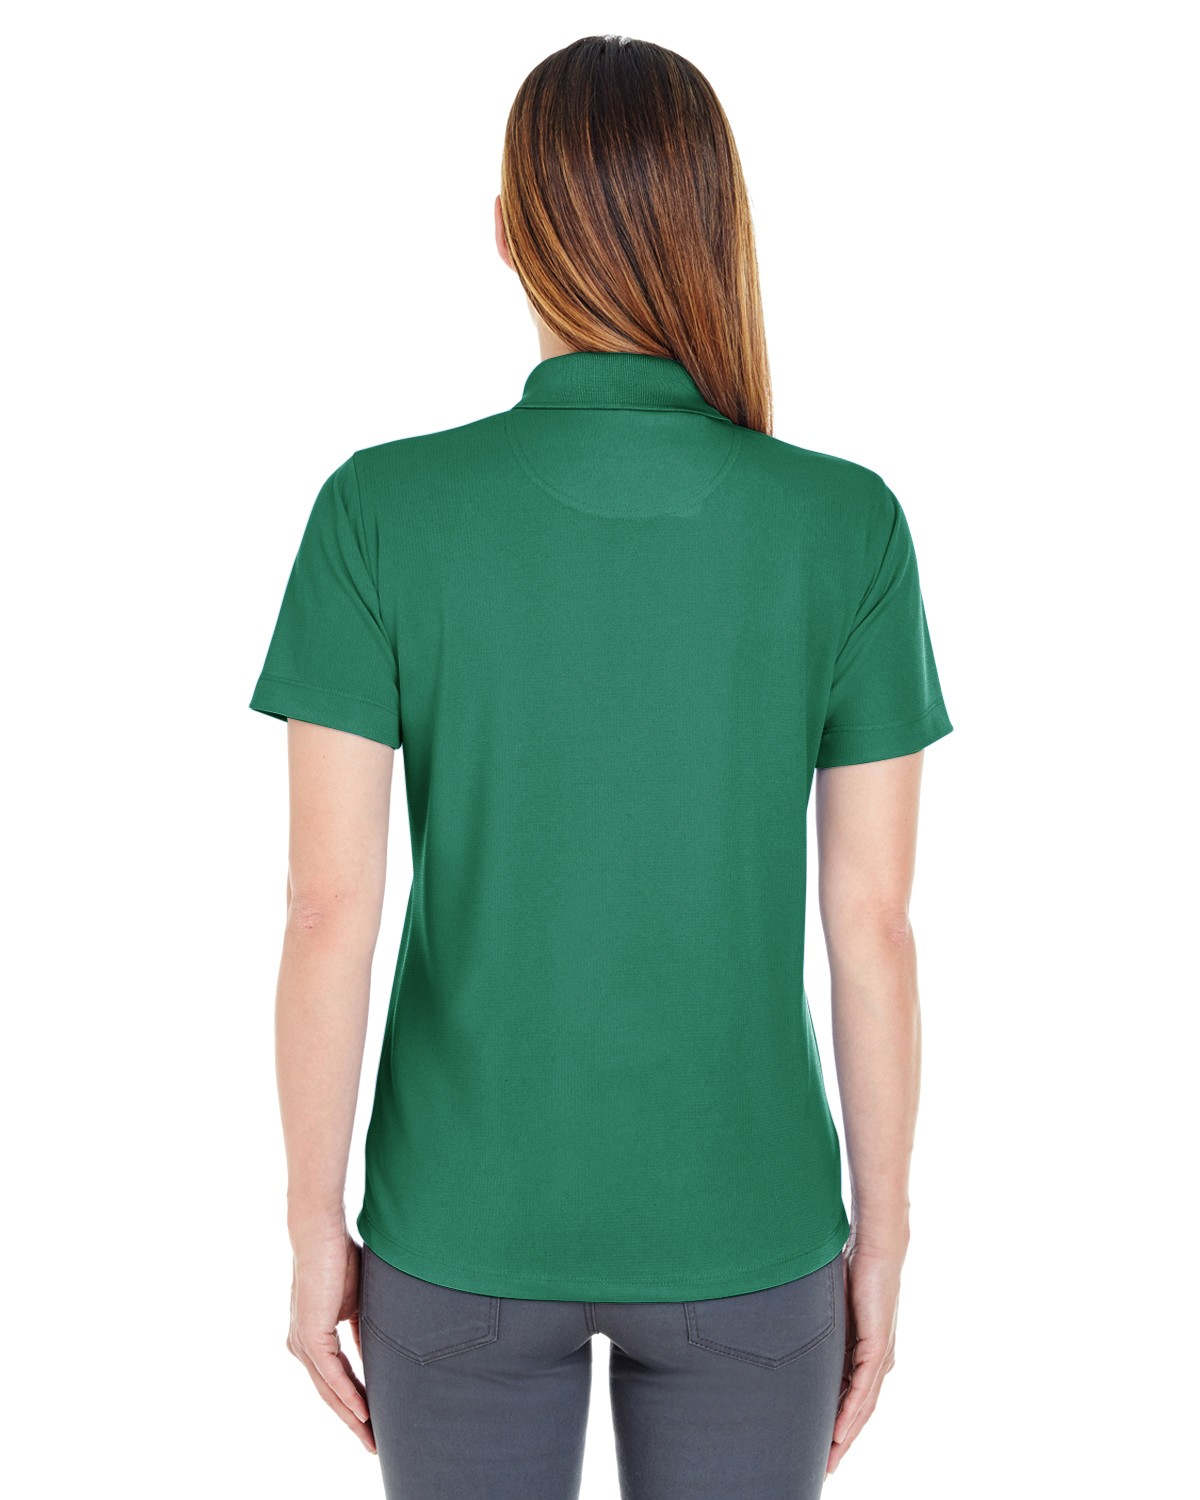 8445L UltraClub FOREST GREEN